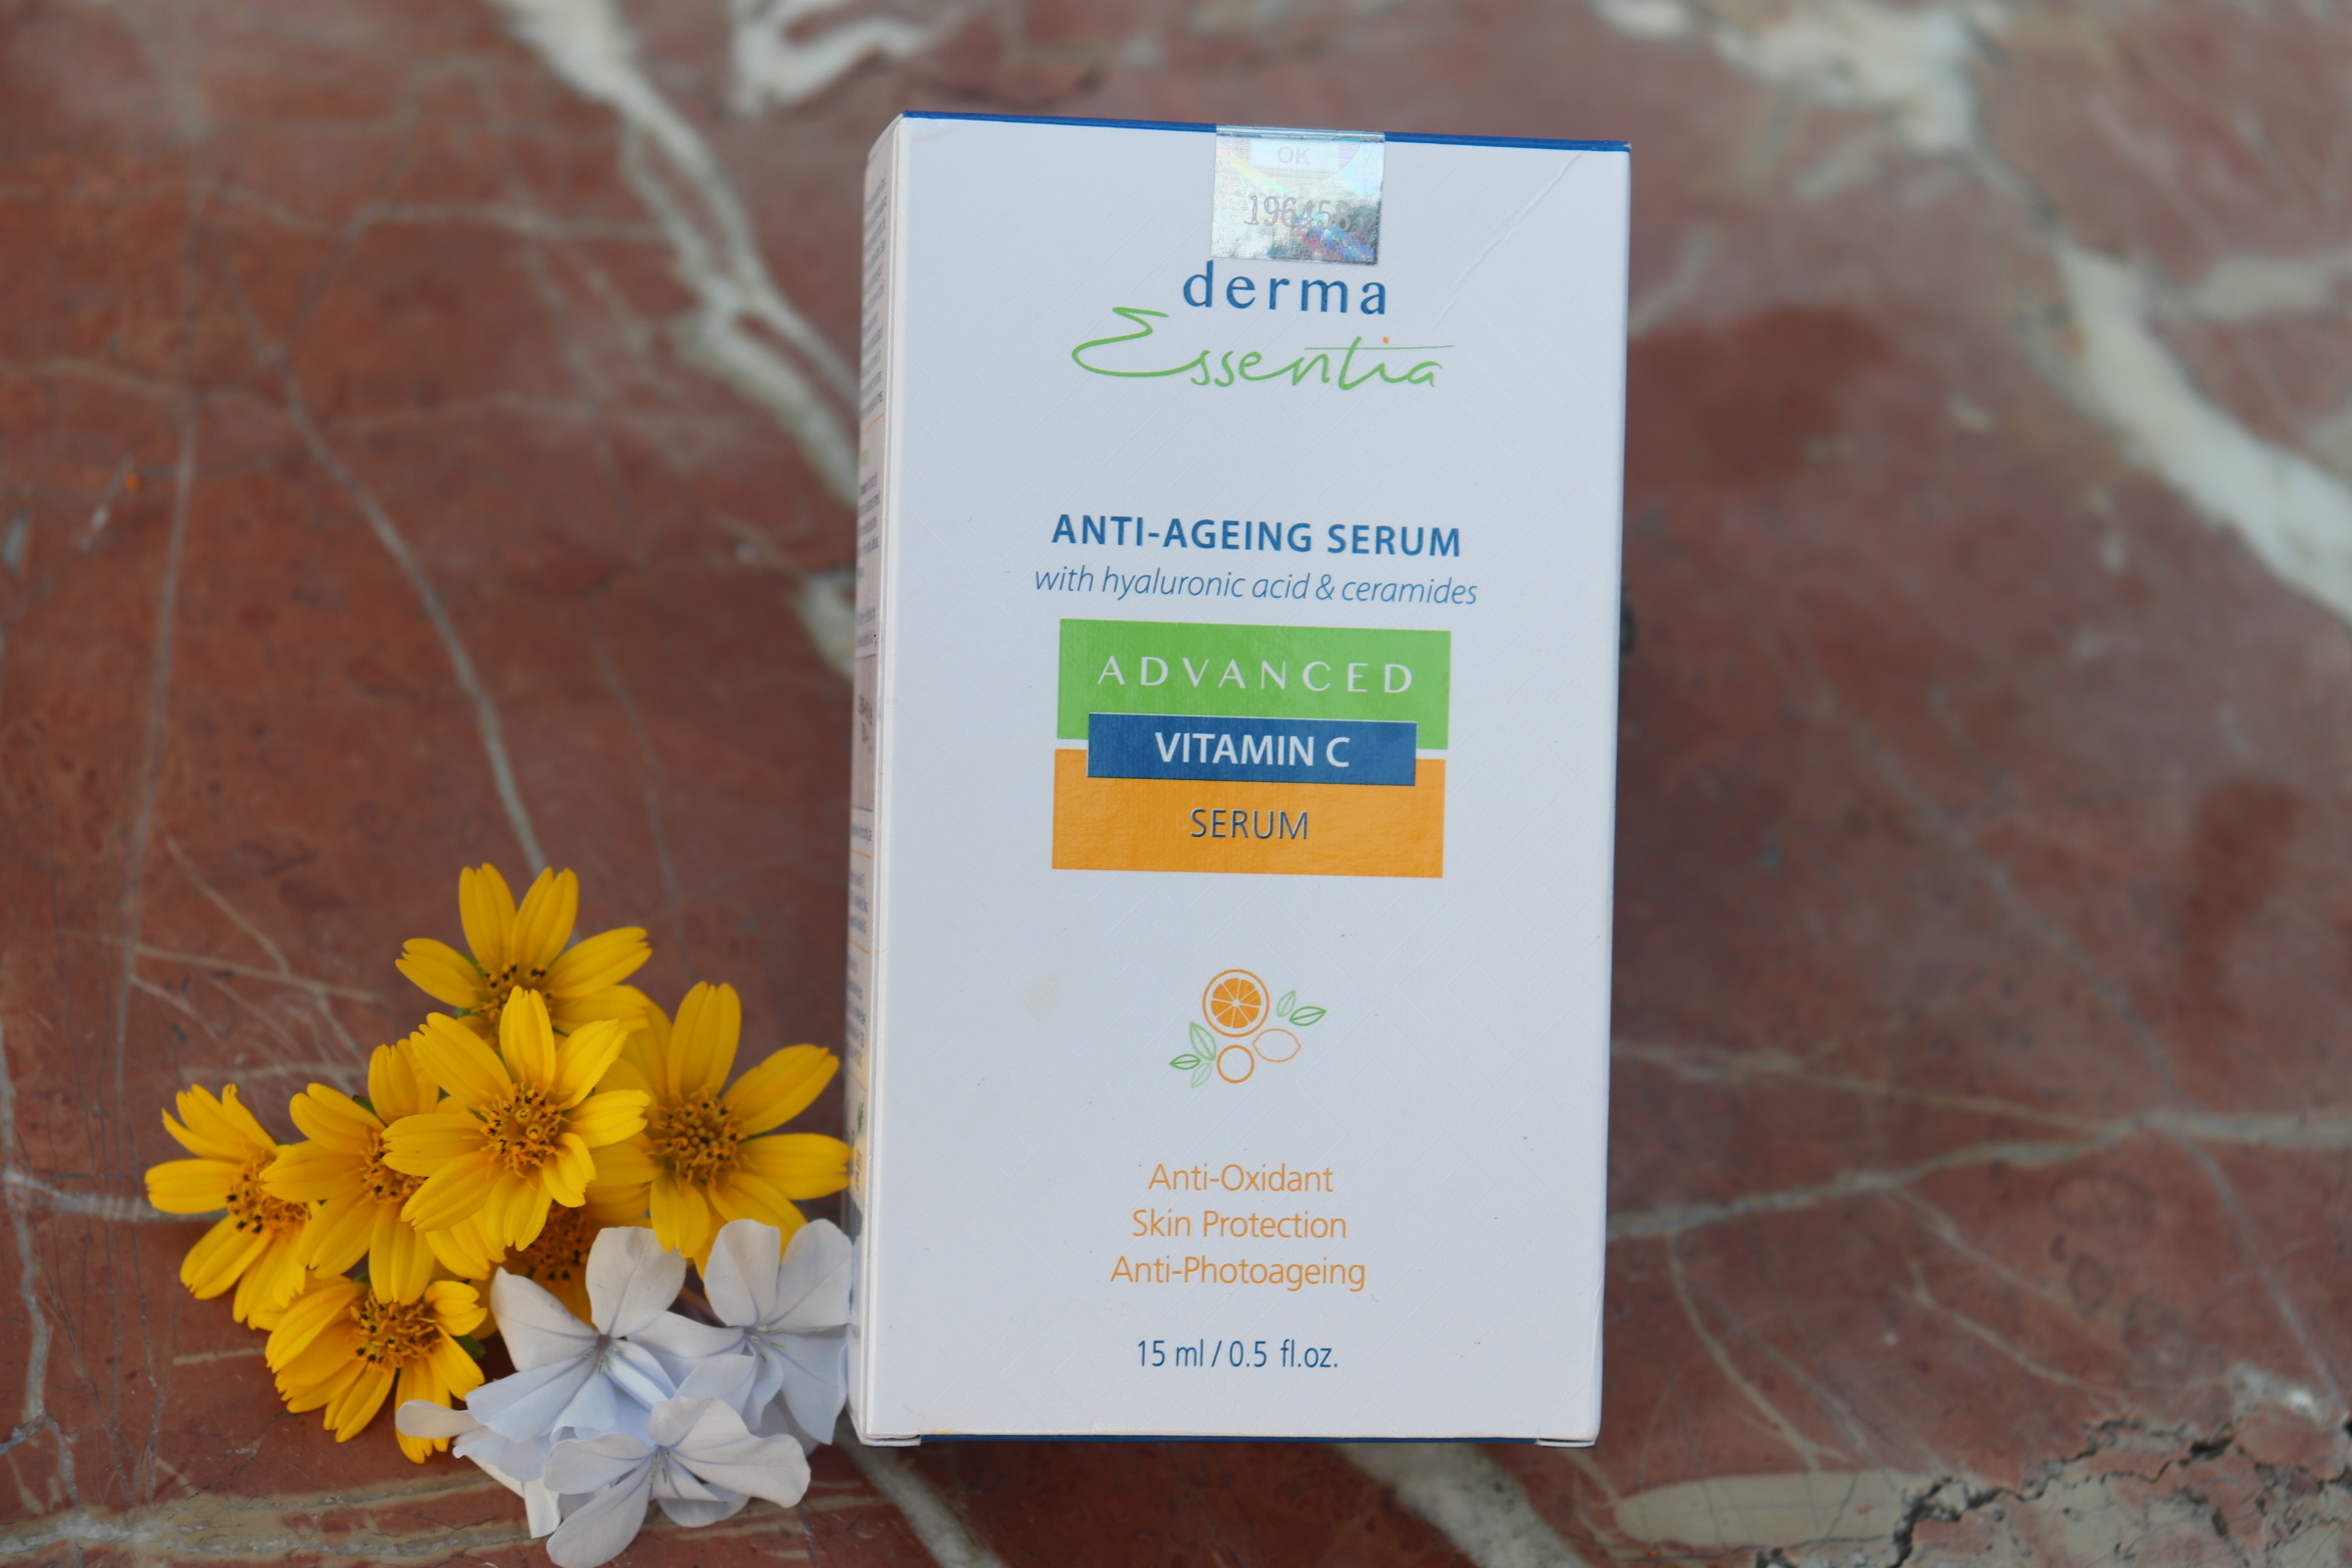 Derma Essentia Advanced Vitamin C Anti-Ageing Serum-Best facial serum with vitamin C, hyaluronic acid and ceramides-By niharikadubey-1